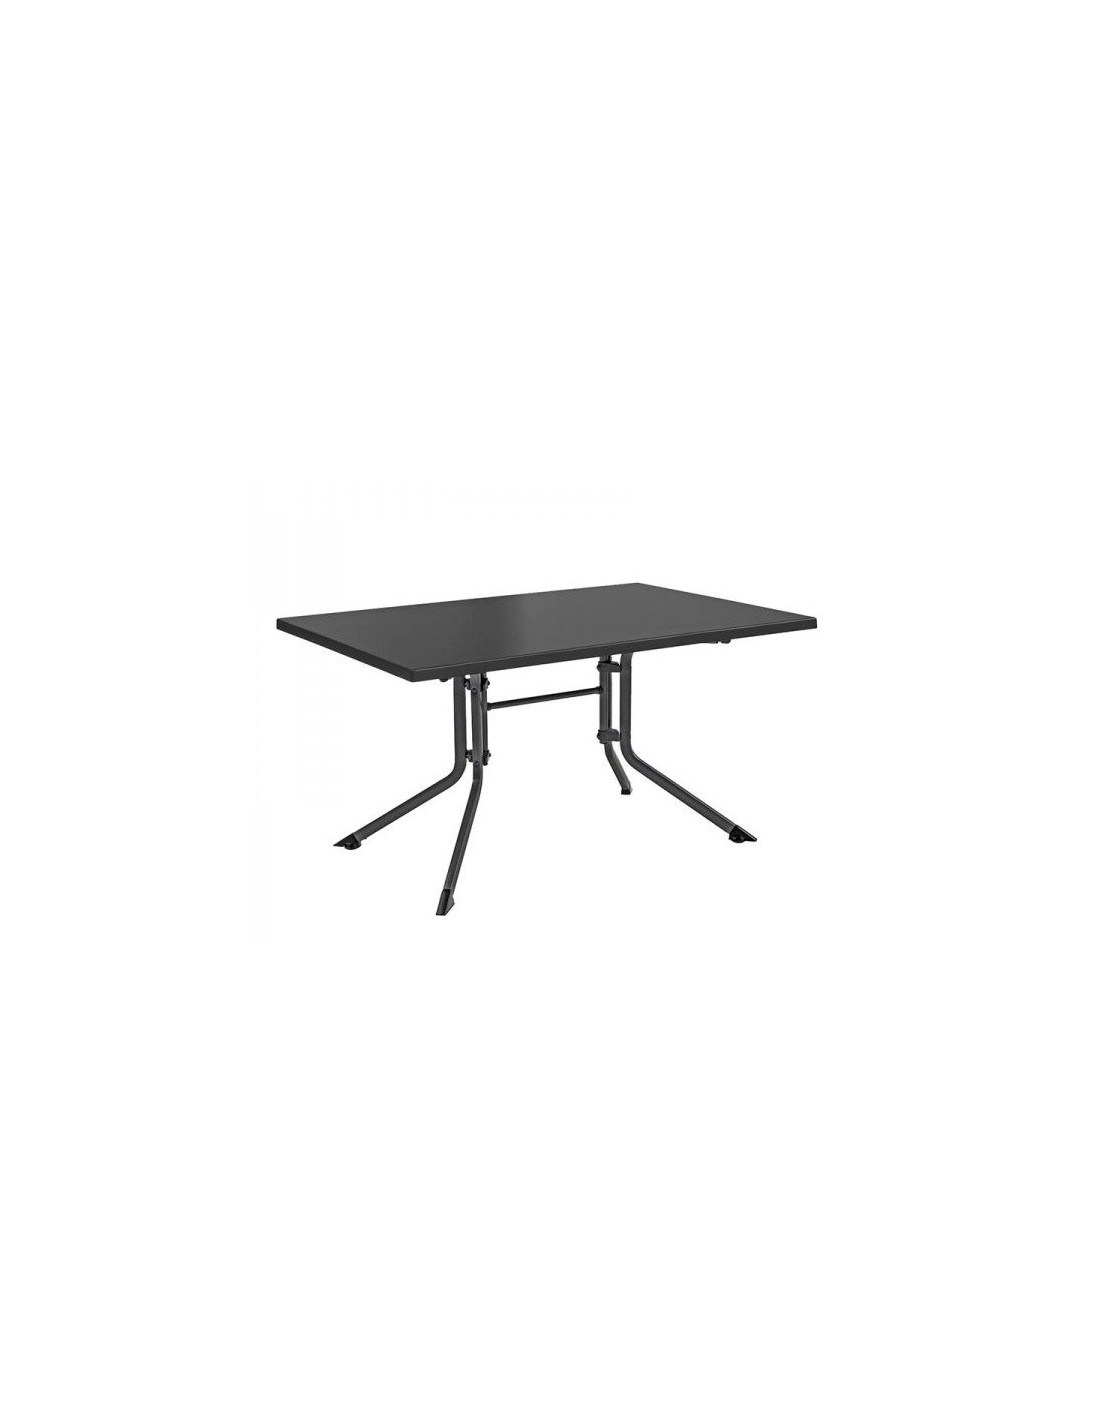 d coration castorama table jardin pliante 36 strasbourg table a tapisser chez castorama. Black Bedroom Furniture Sets. Home Design Ideas